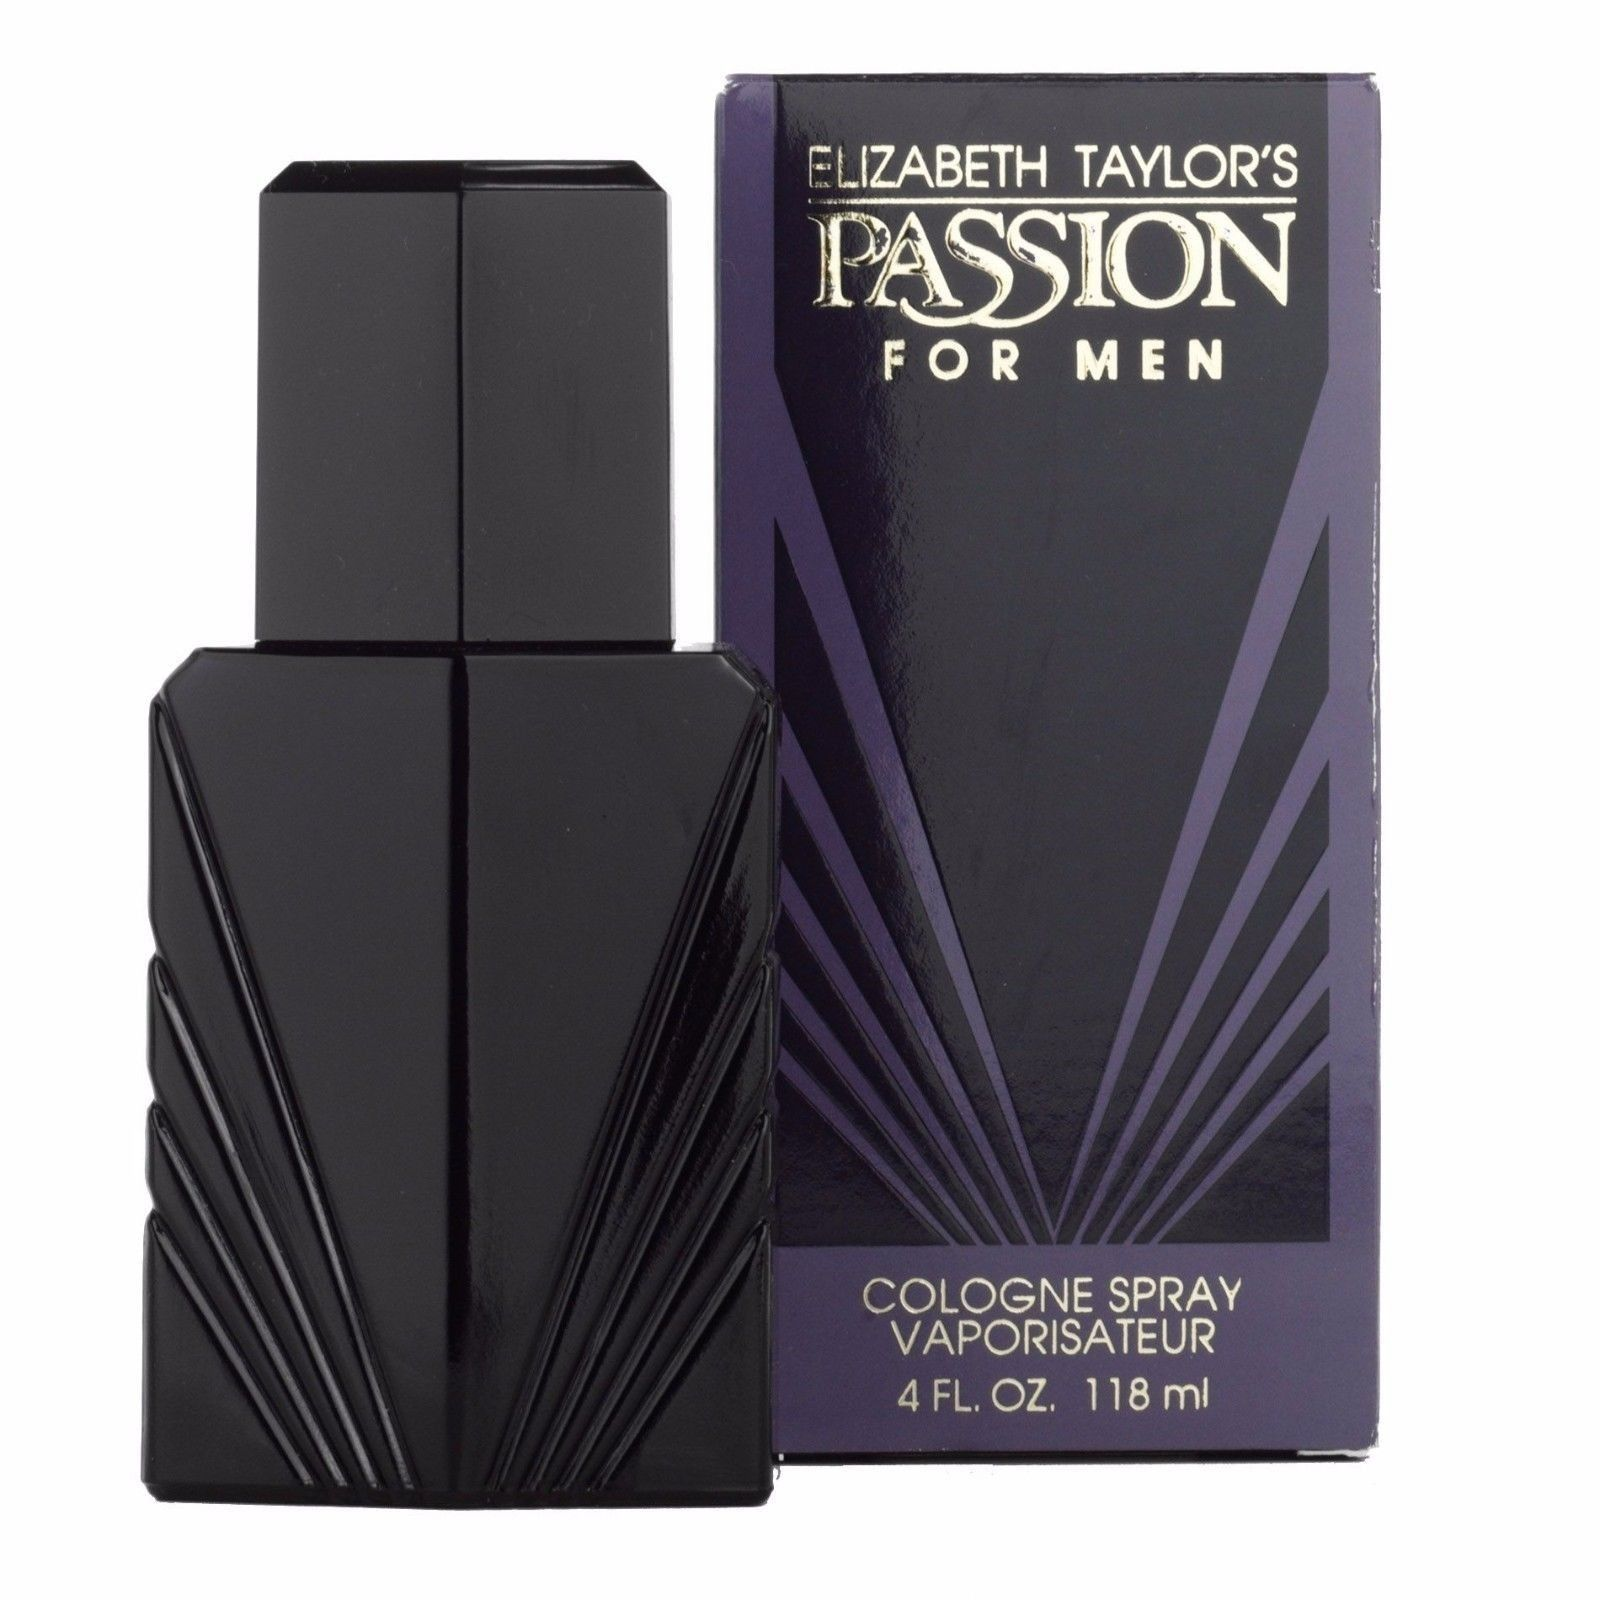 WHOLESALE LOT HIS HERS Passion tester women 2.5 edt and 4.0 COLOGNE Men Reg Box